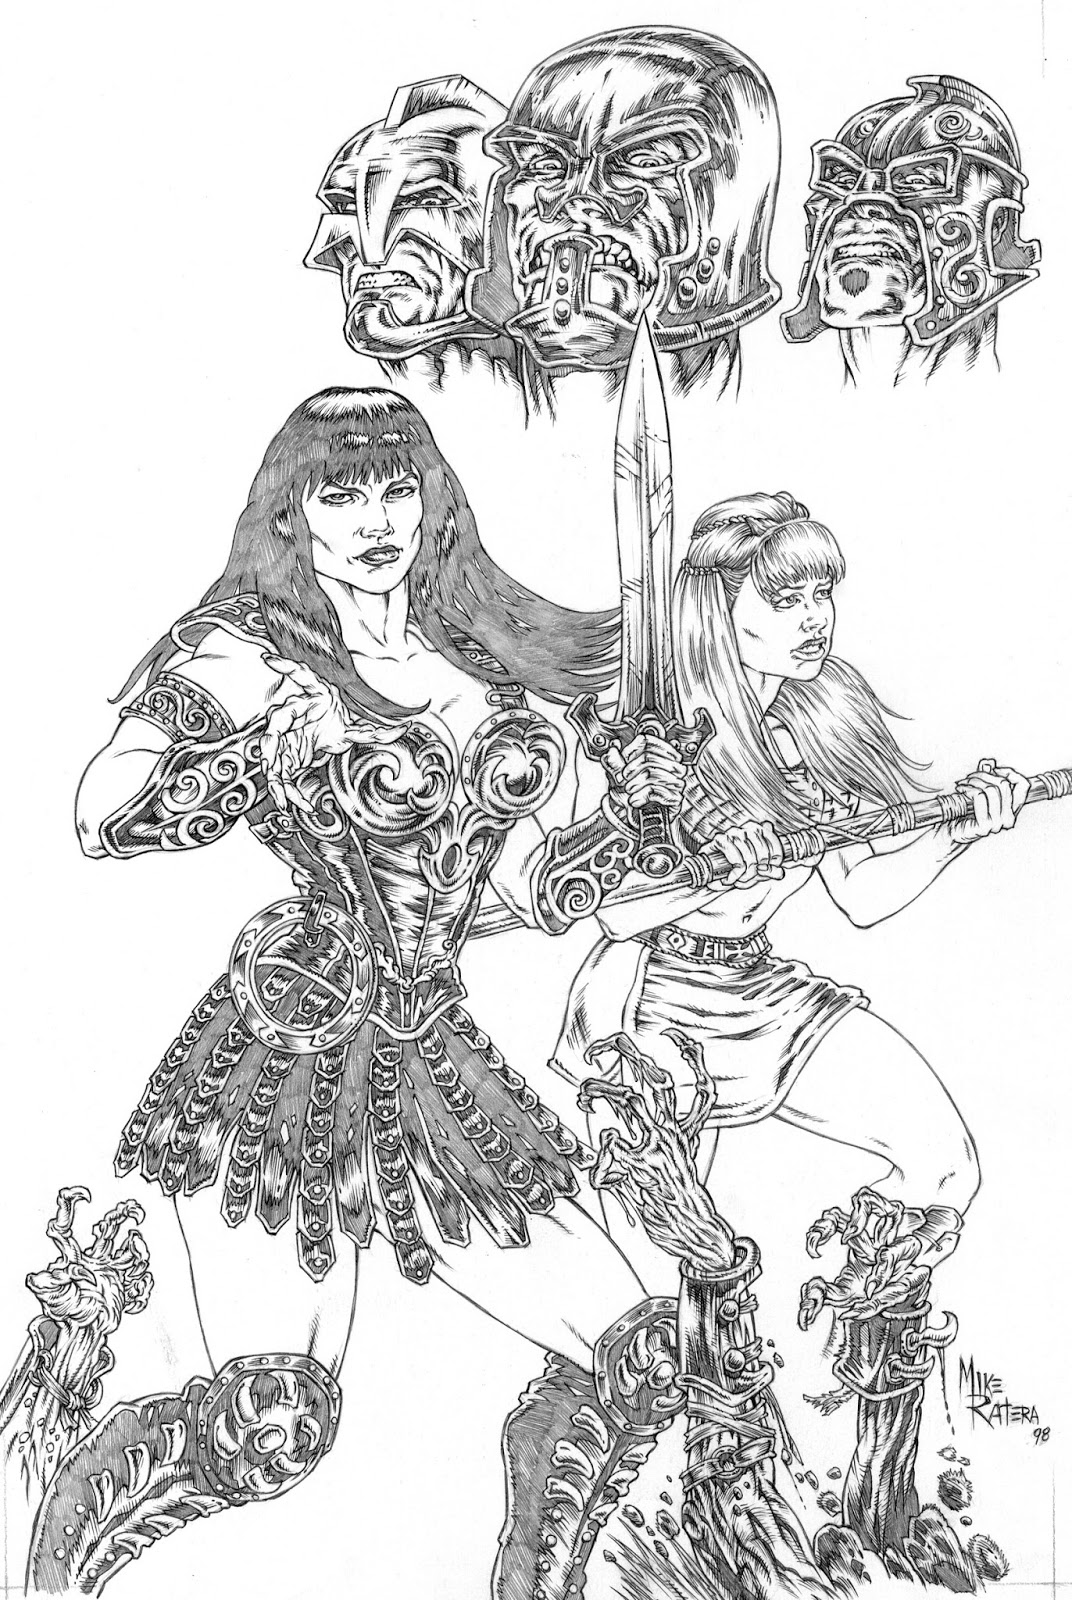 Mike ratera artblog old stuff xena x files Xena coloring book